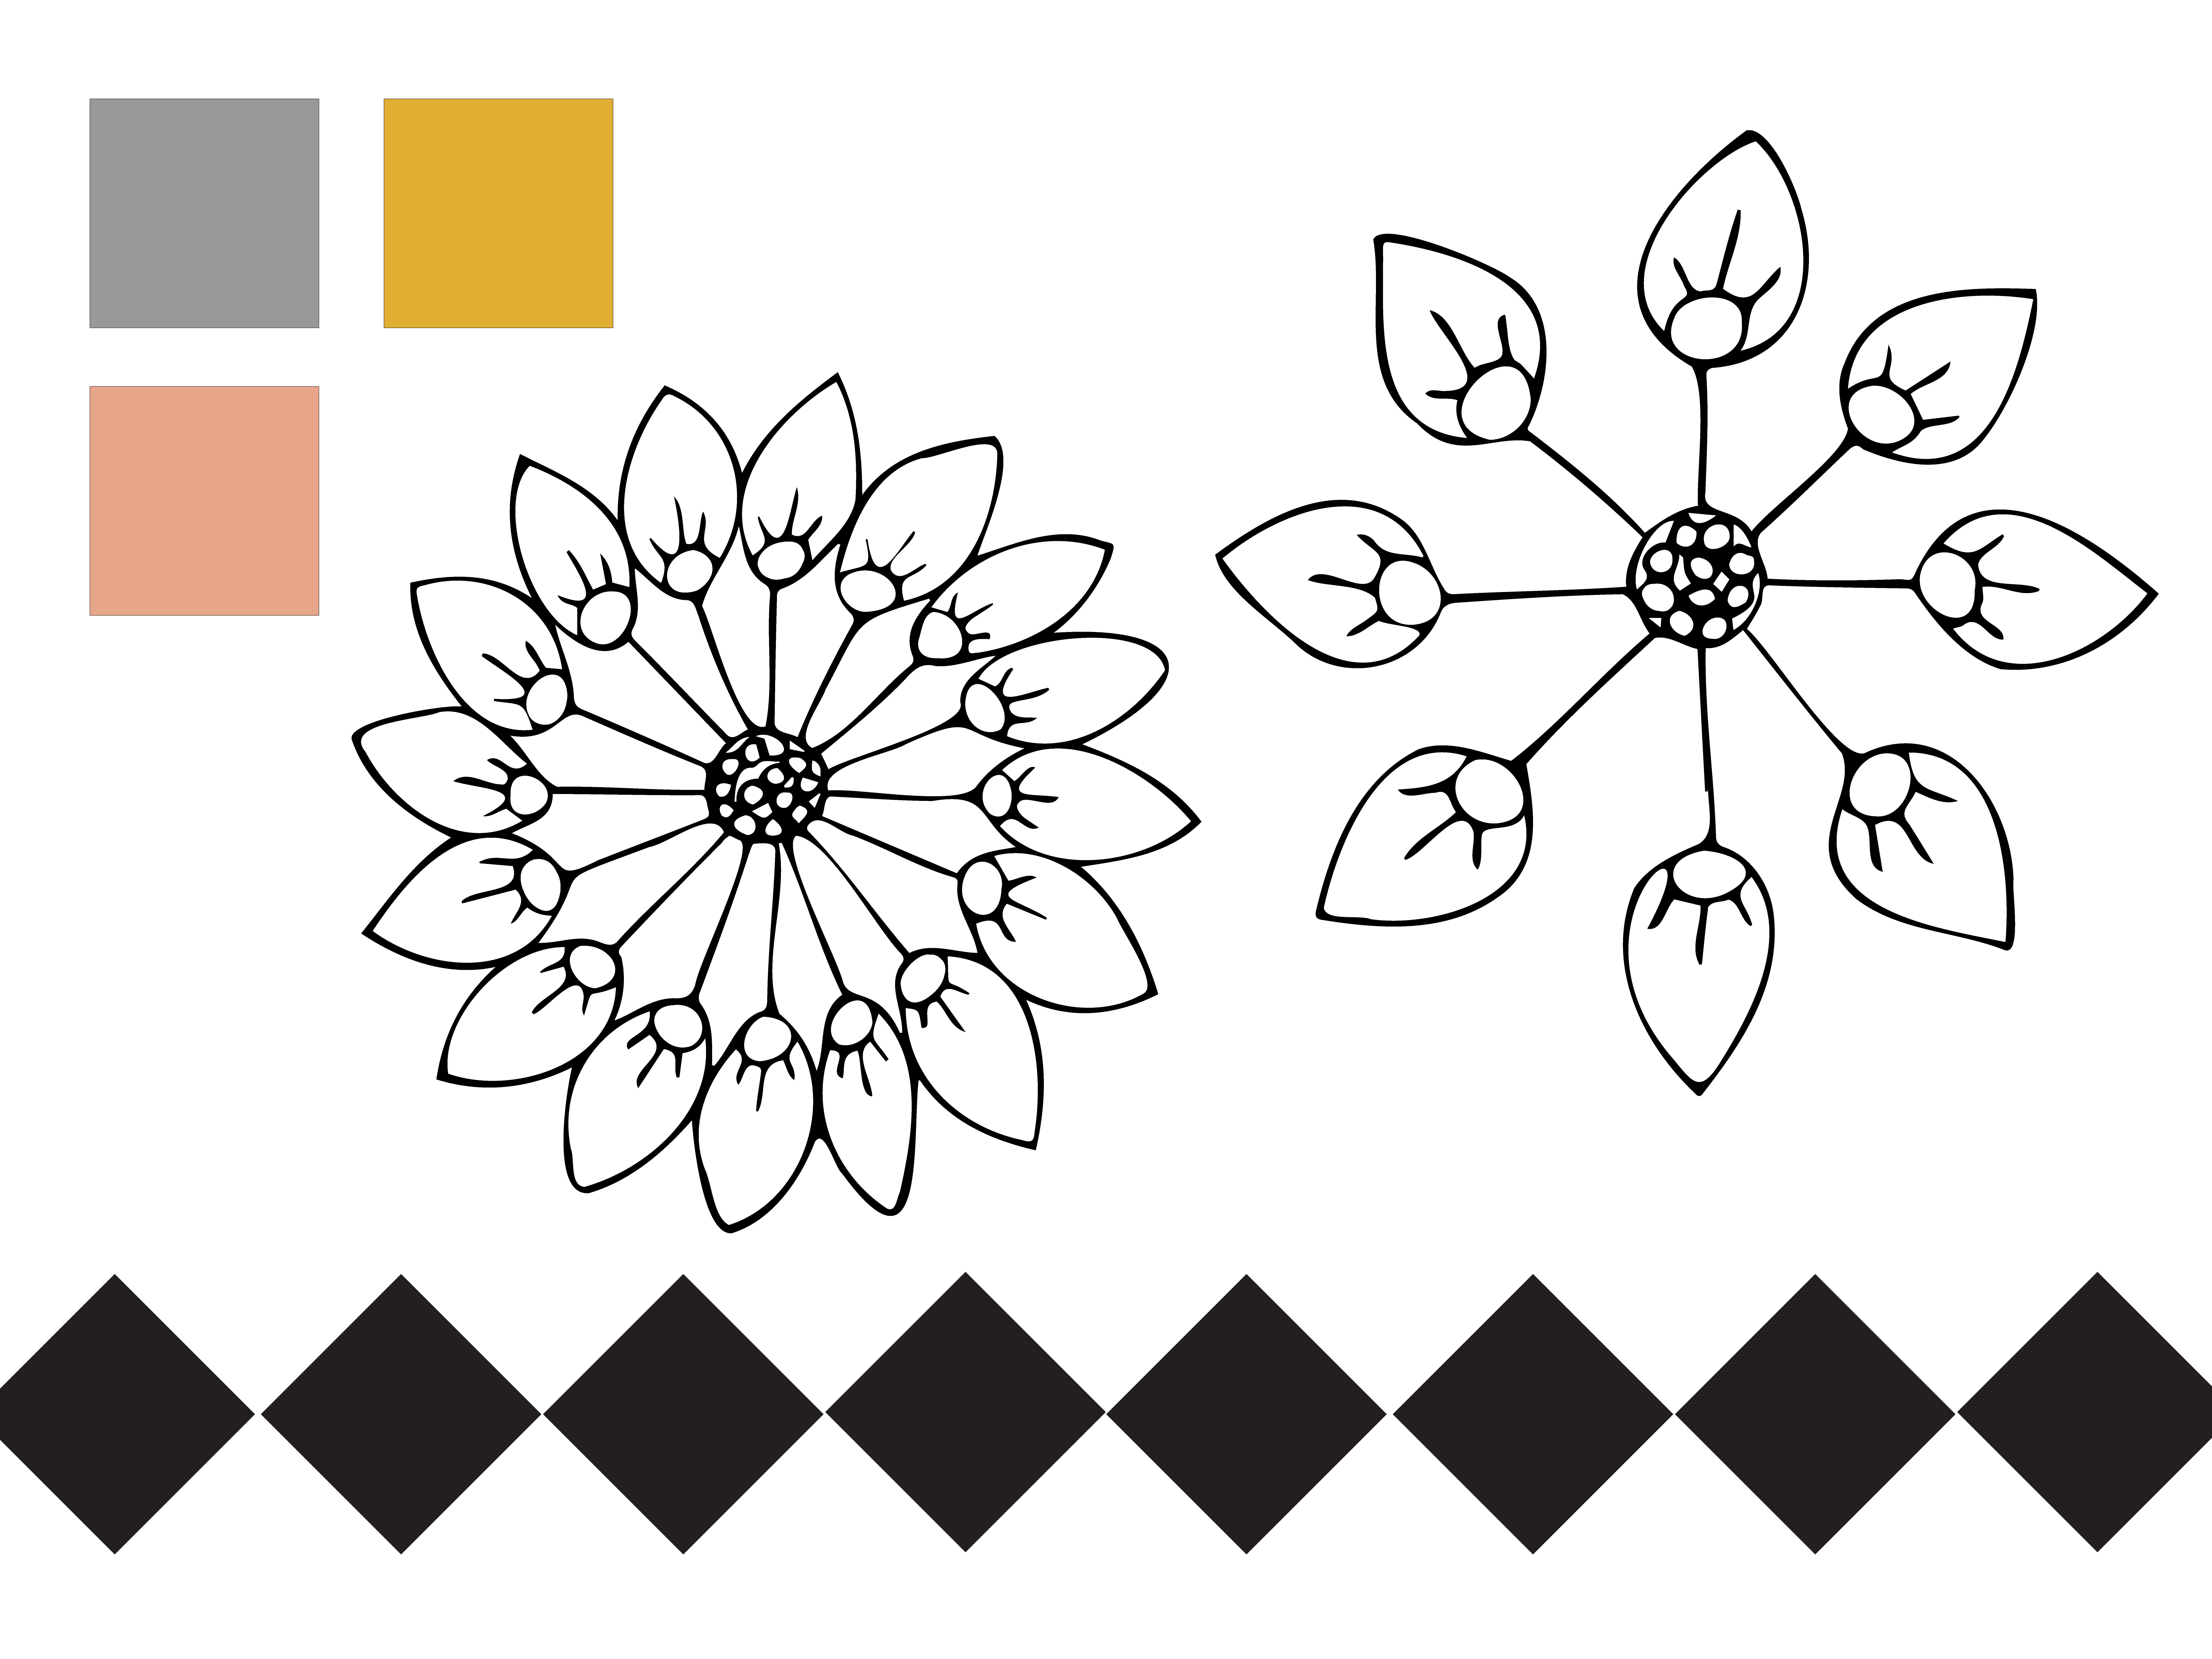 Color palette and motifs for my yellow, coral, and gray floral pattern